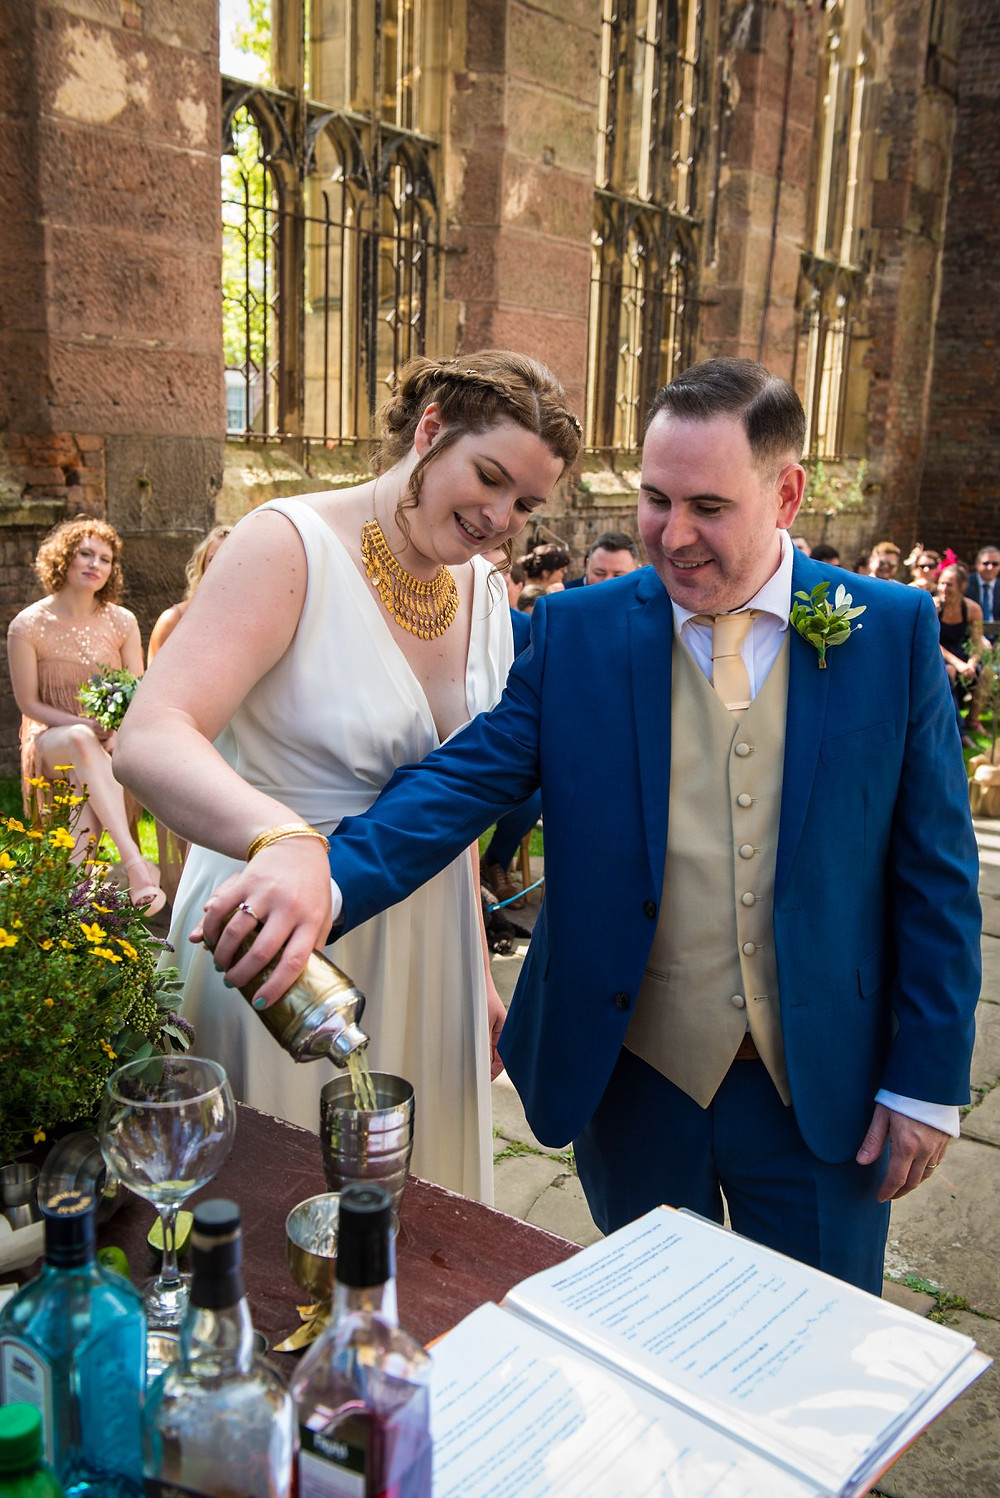 Liverpool Celebrant, Lorraine Hull, the pouring of the wedding unity cocktail